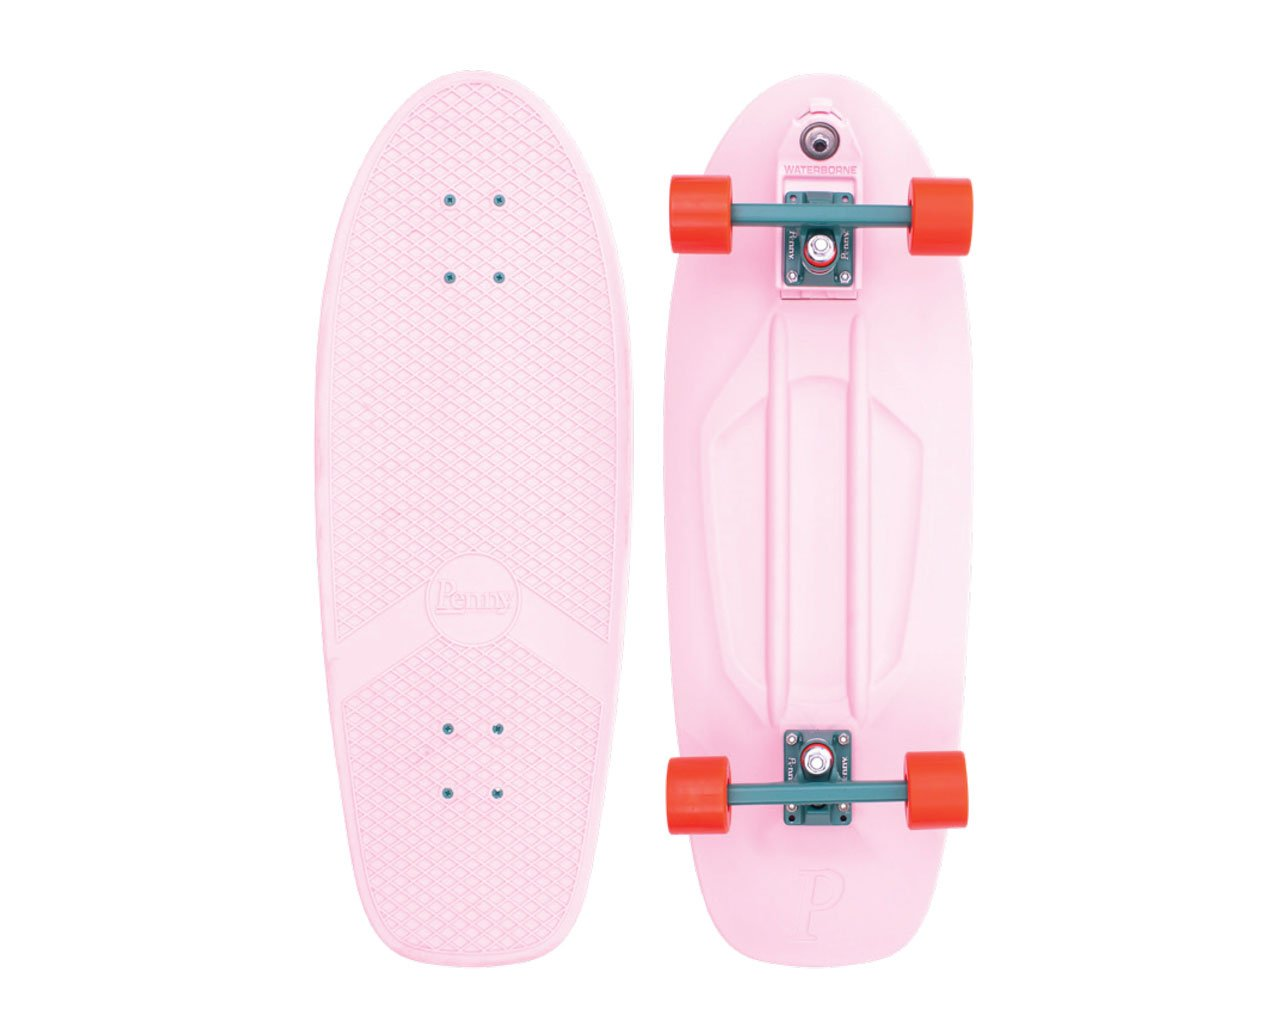 Penny FW/20/21 Cruiser Preview